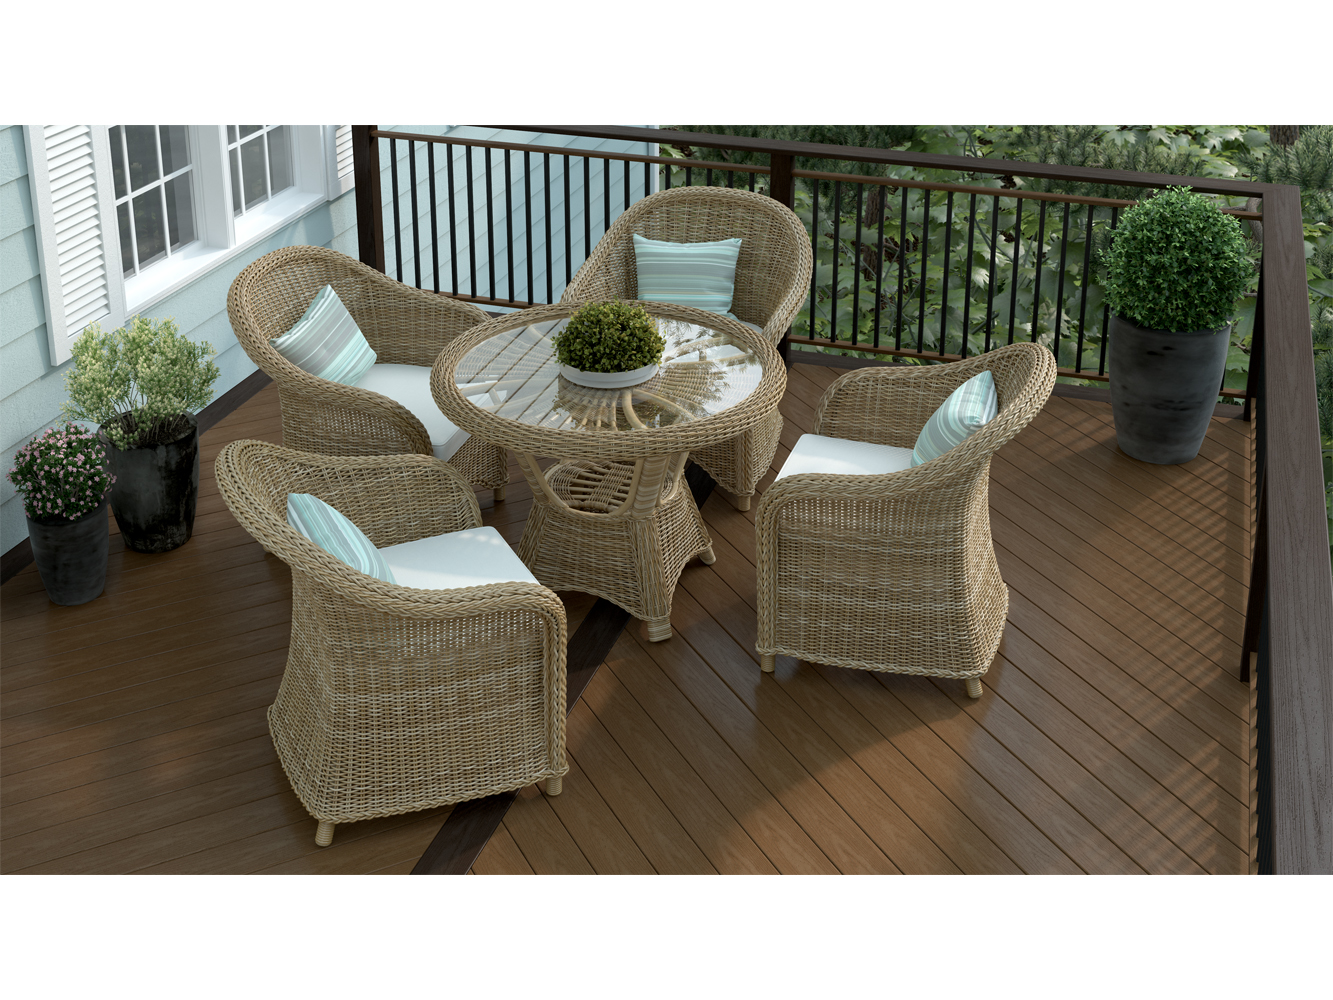 pix-us-cg-rattan-furniture